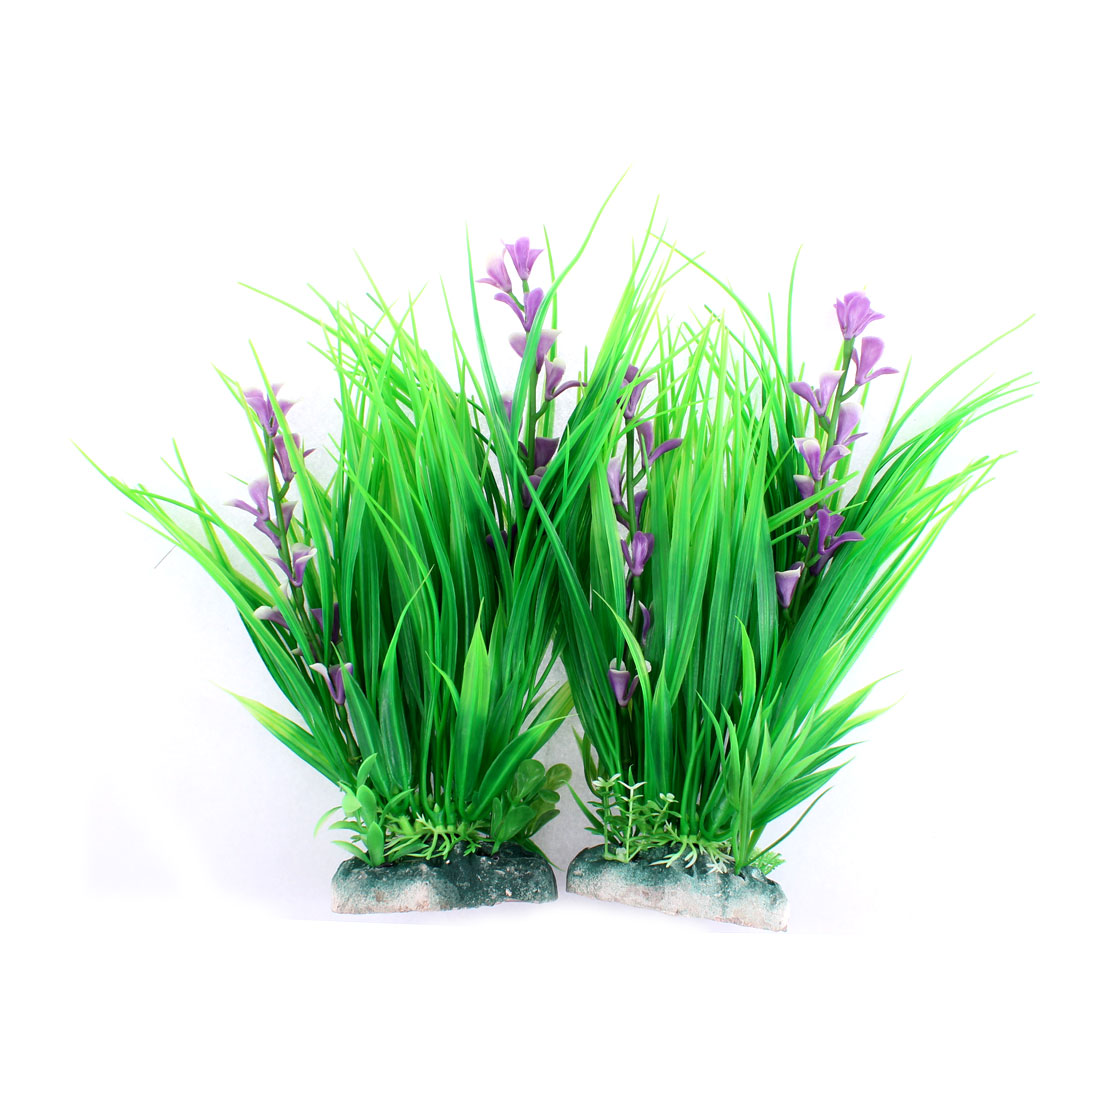 Aquarium Ceramic Base Emulational Underwater Plant Decor Green 26cm High 2pcs